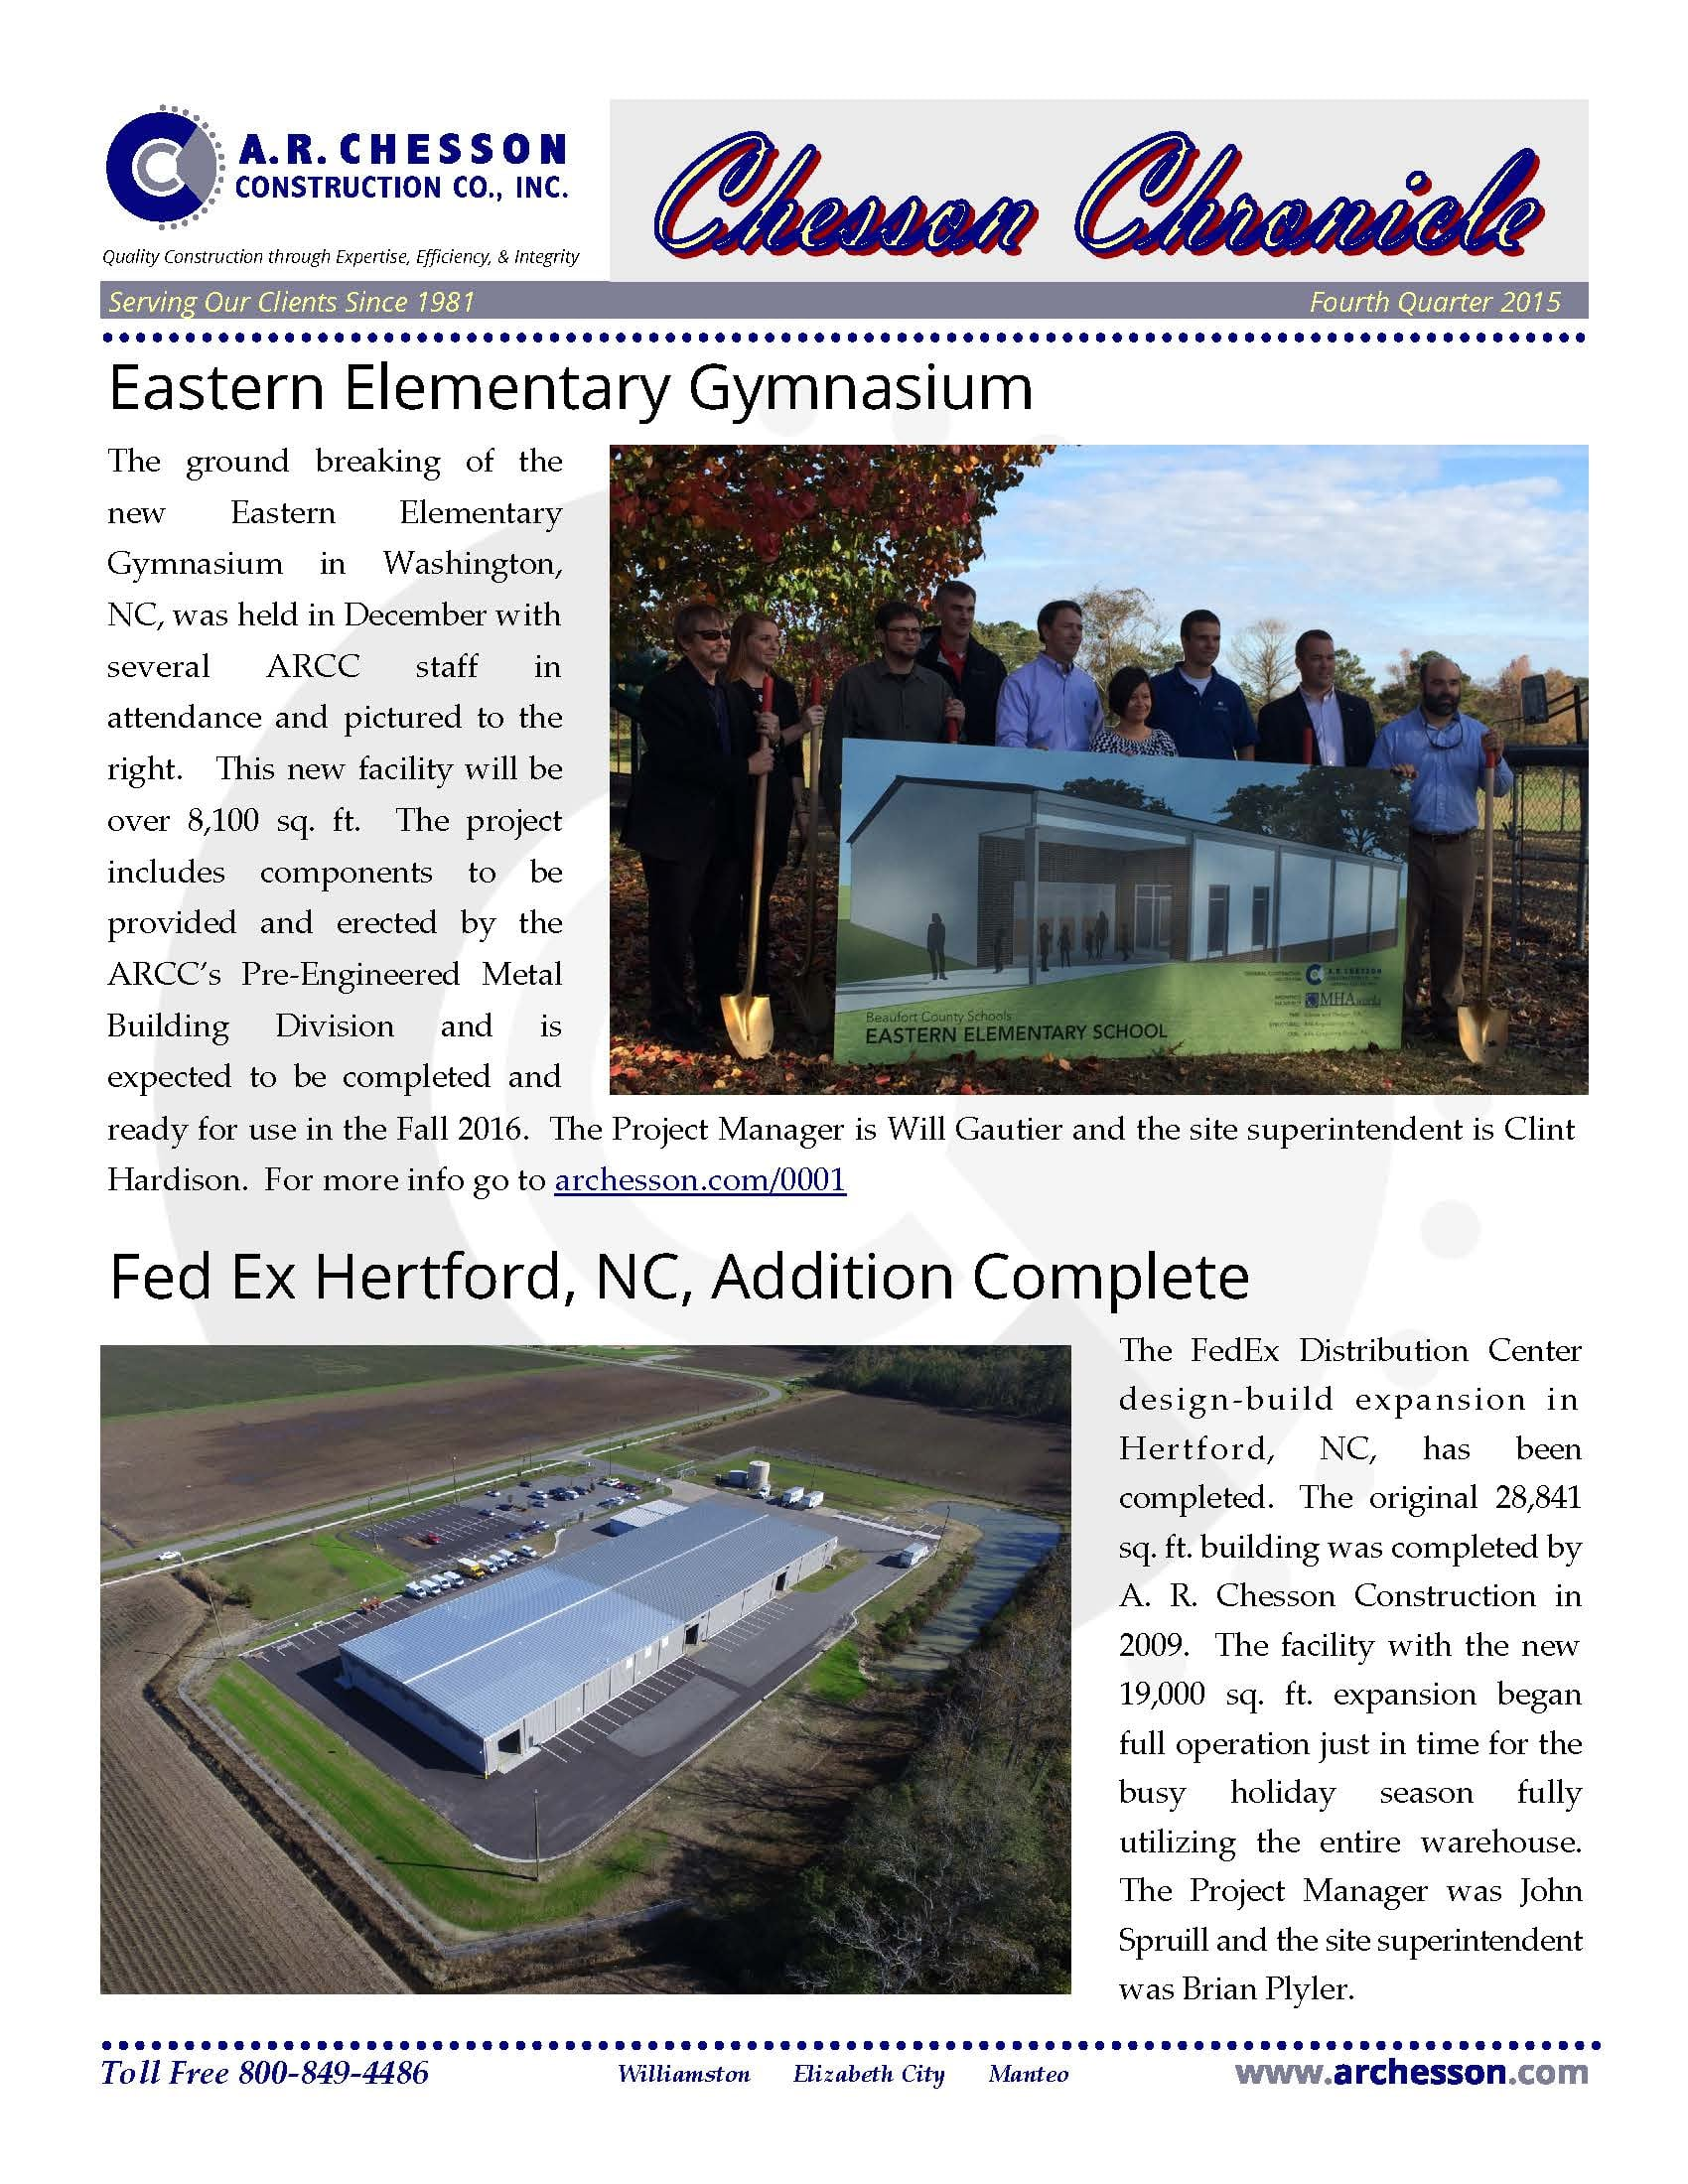 NEWSLETTER - 2015 4th qtr Cover_Page_1.jpg